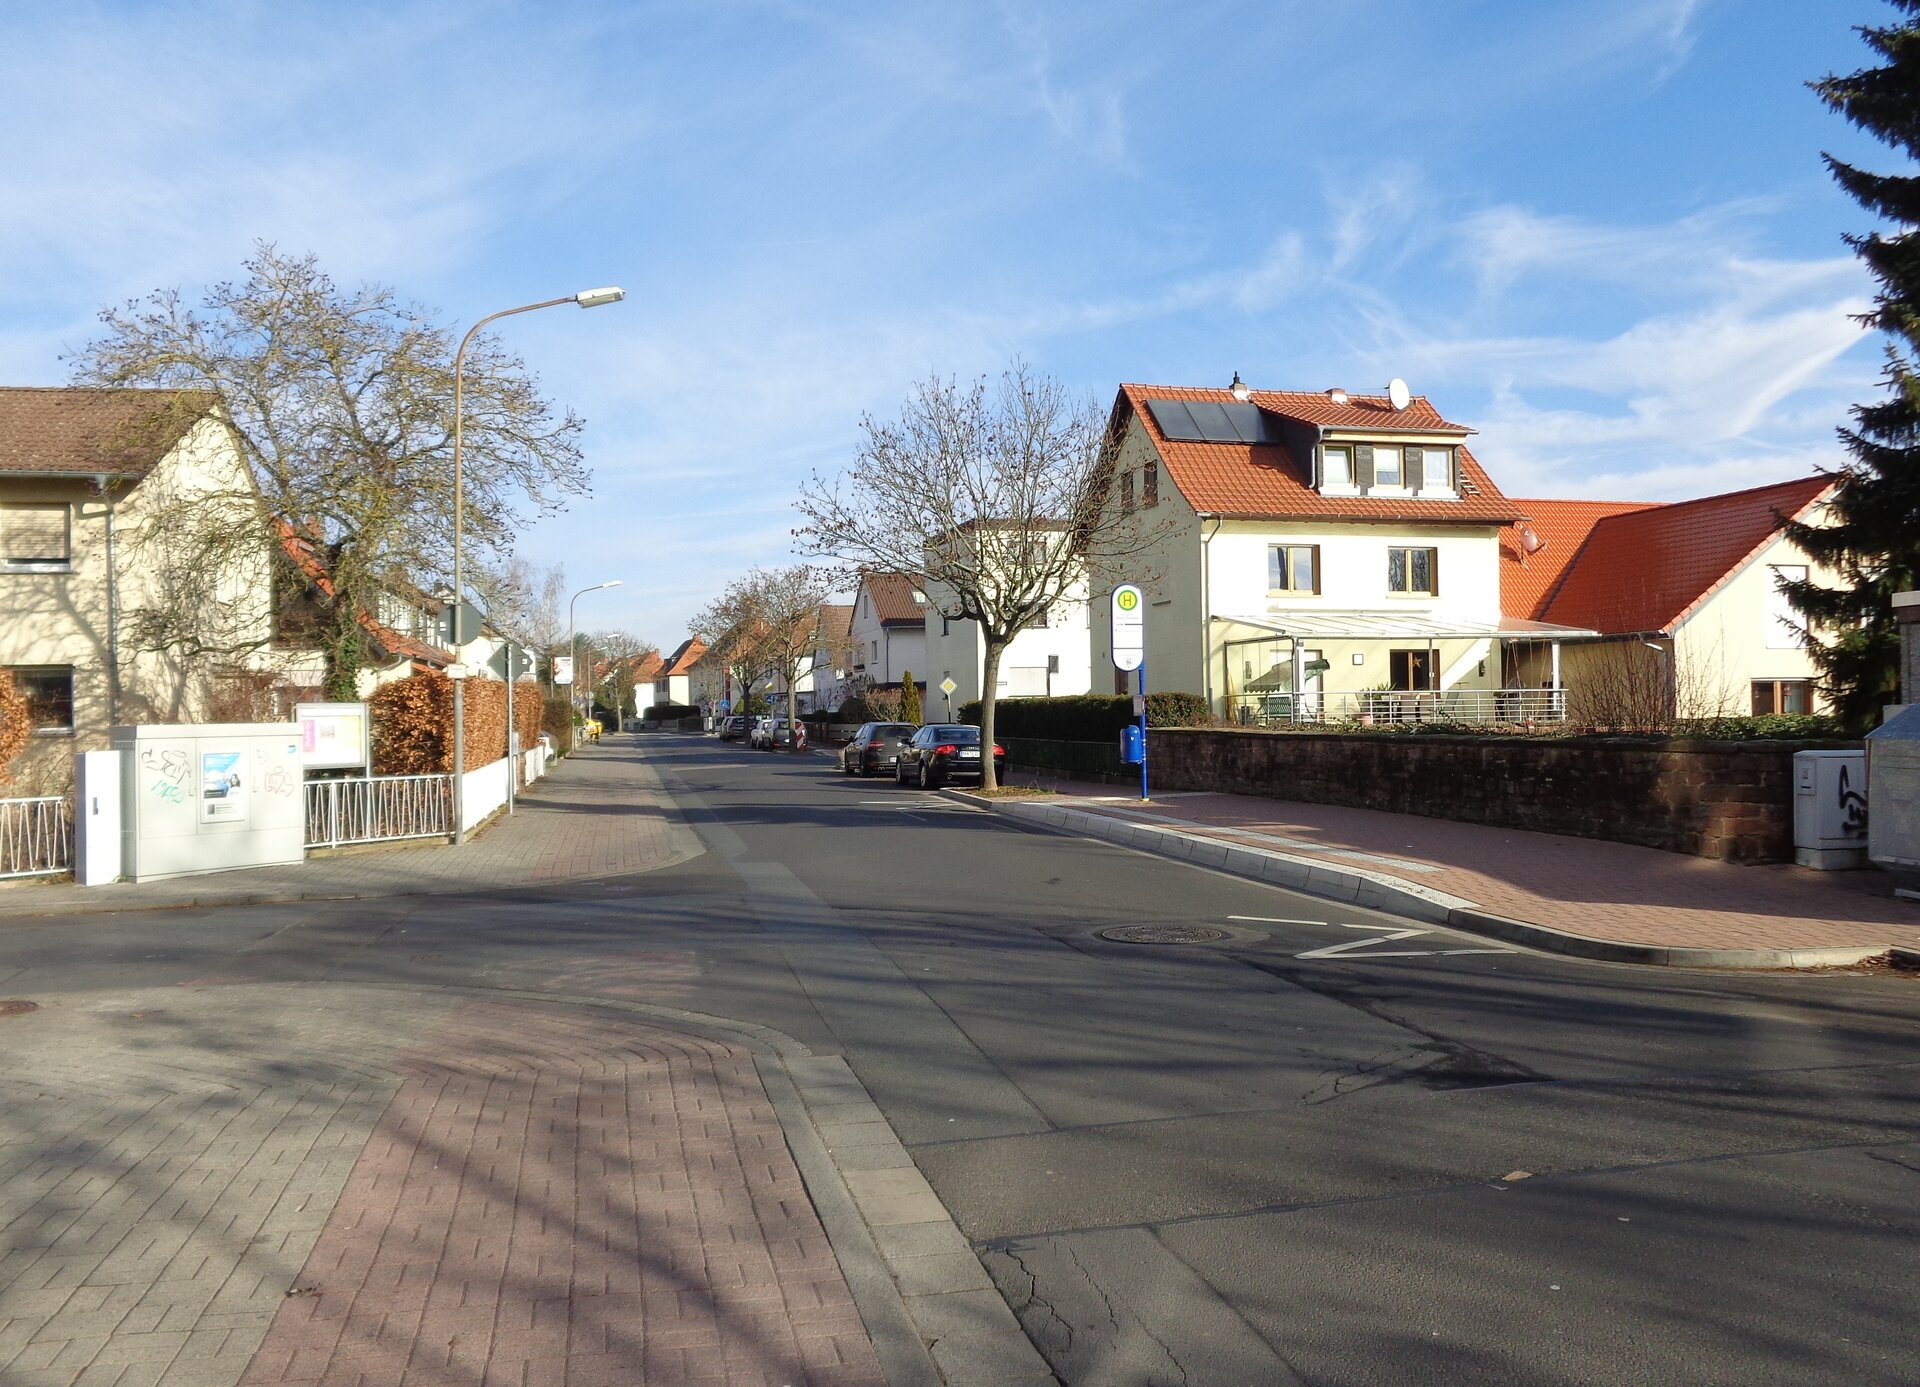 Foto: Stadt Maintal - Backesweg/Ecke Westendstraße in Maintal Dörnigheim